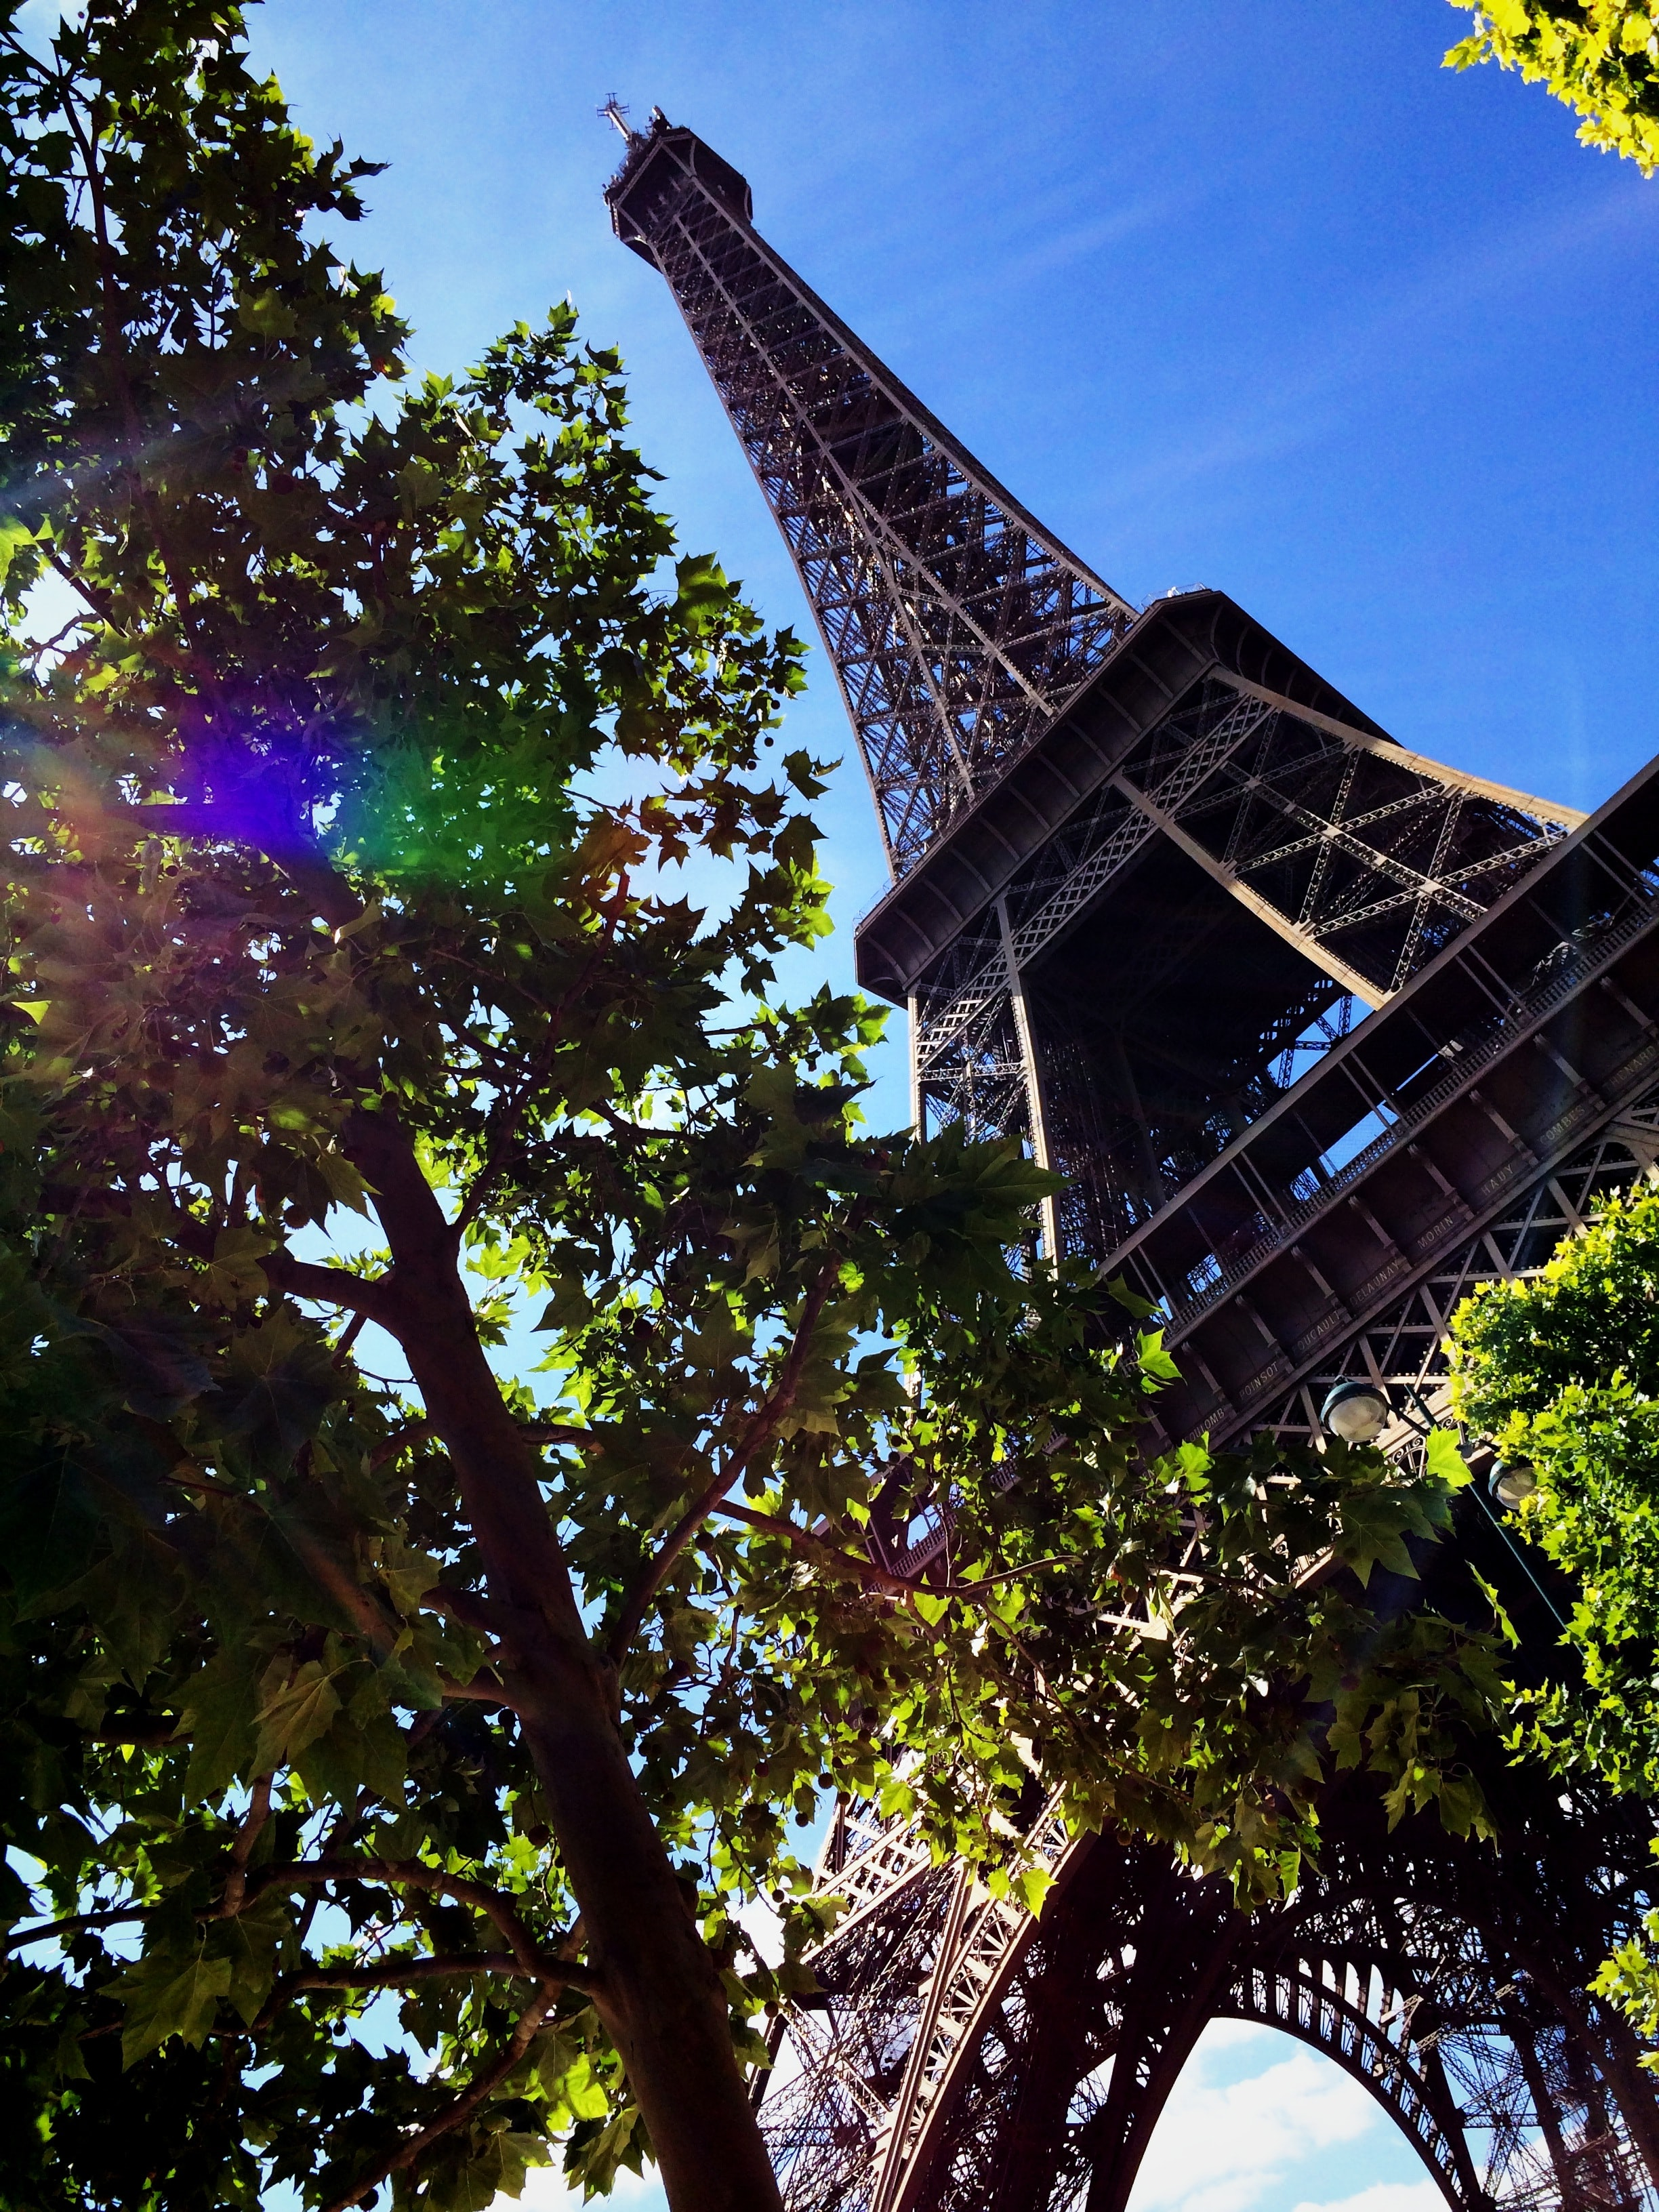 An angled shot looking up at the Eiffel Tower with a tree in the foreground